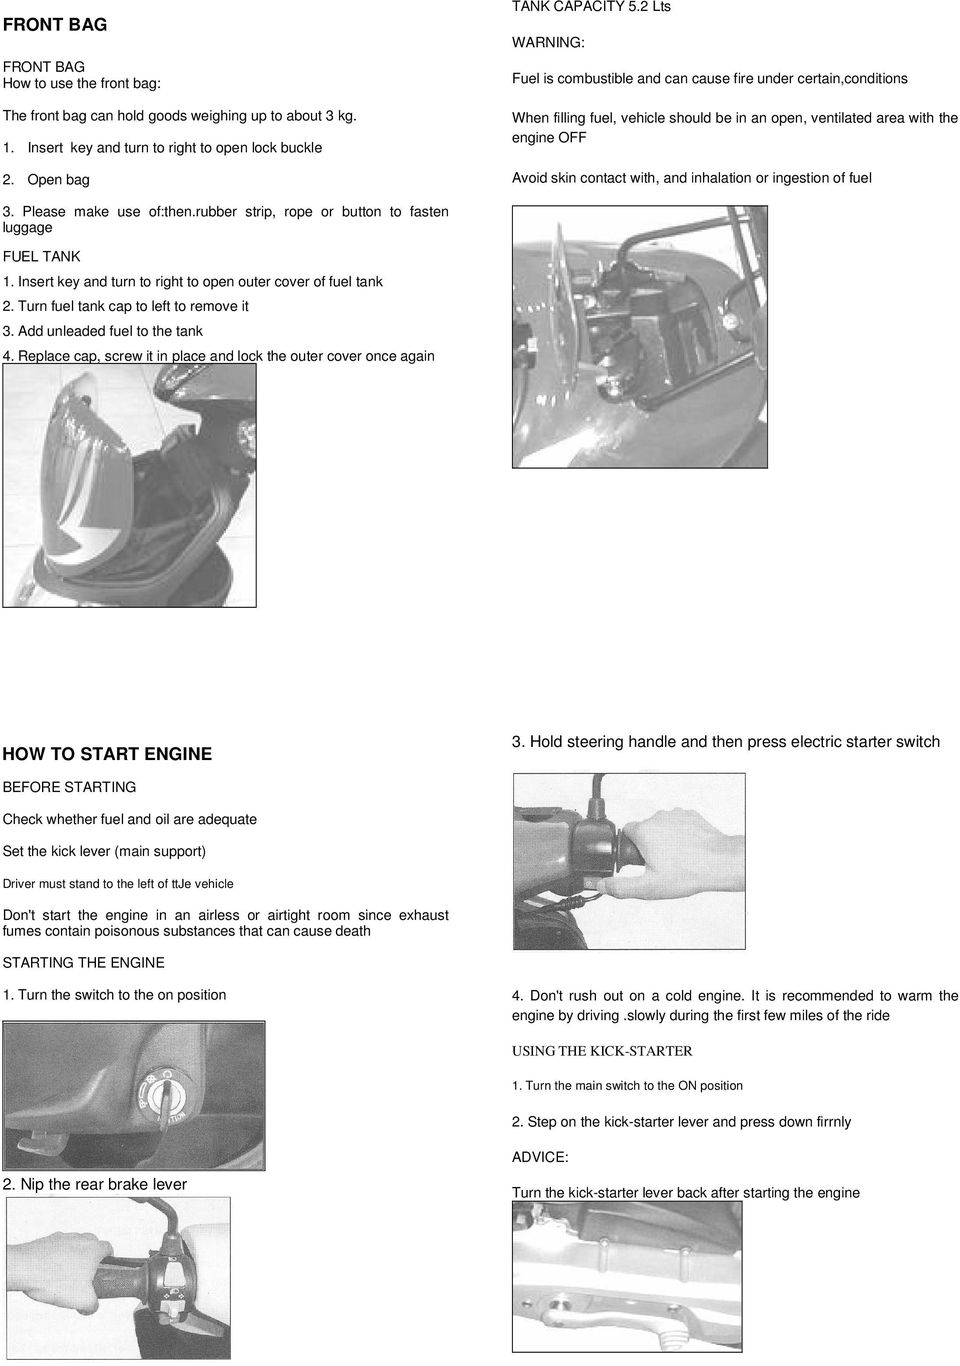 inhalation or ingestion of fuel 3. Please make use of:then.rubber strip, rope or button to fasten luggage FUEL TANK 1. Insert key and turn to right to open outer cover of fuel tank 2.